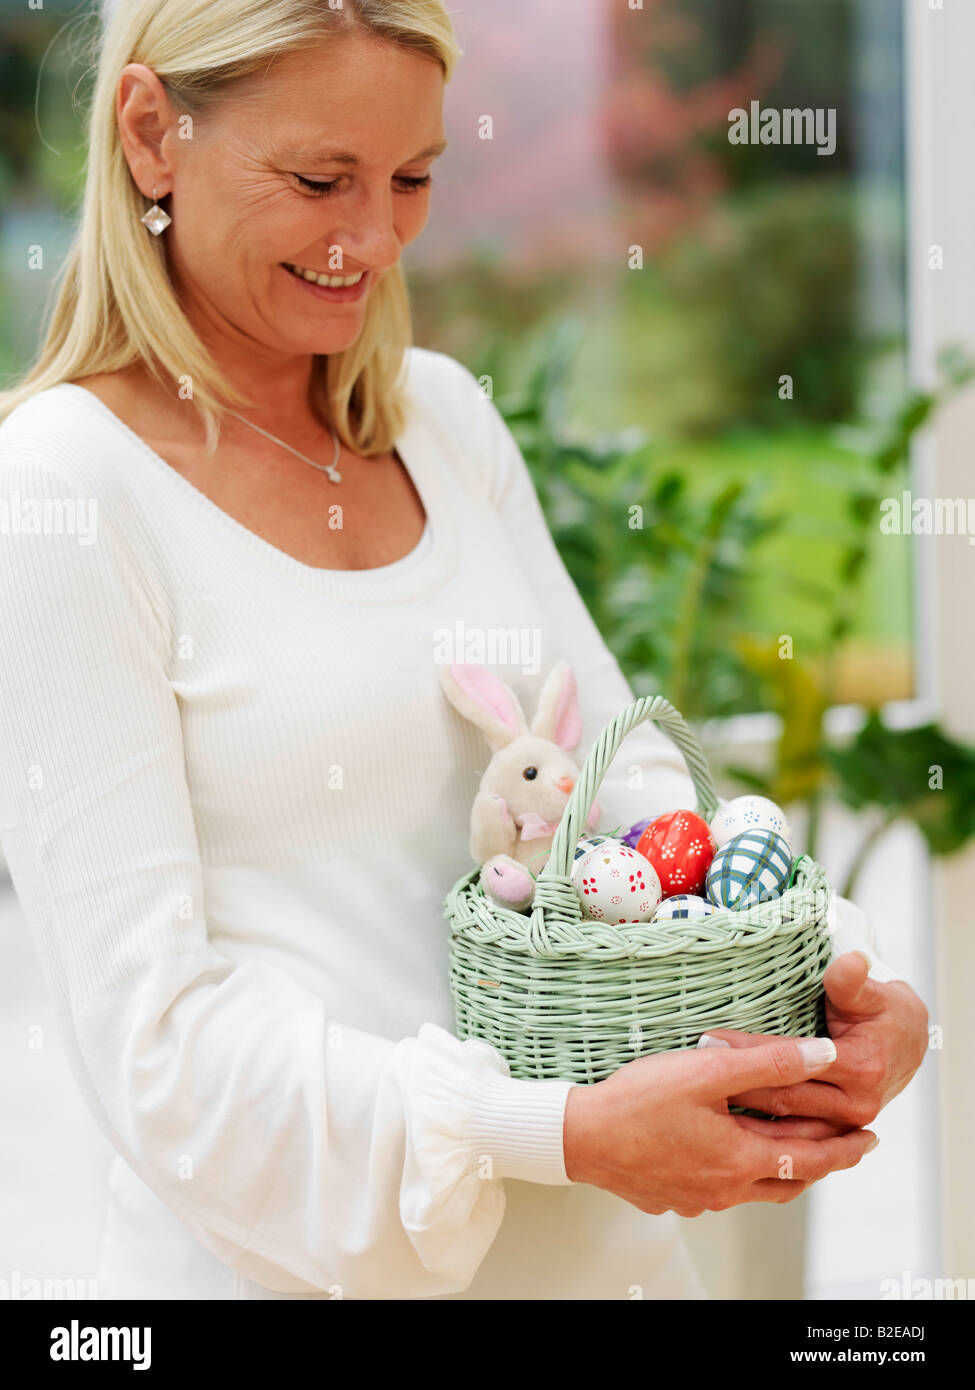 Close-up of woman carrying basket of Easter eggs - Stock Image